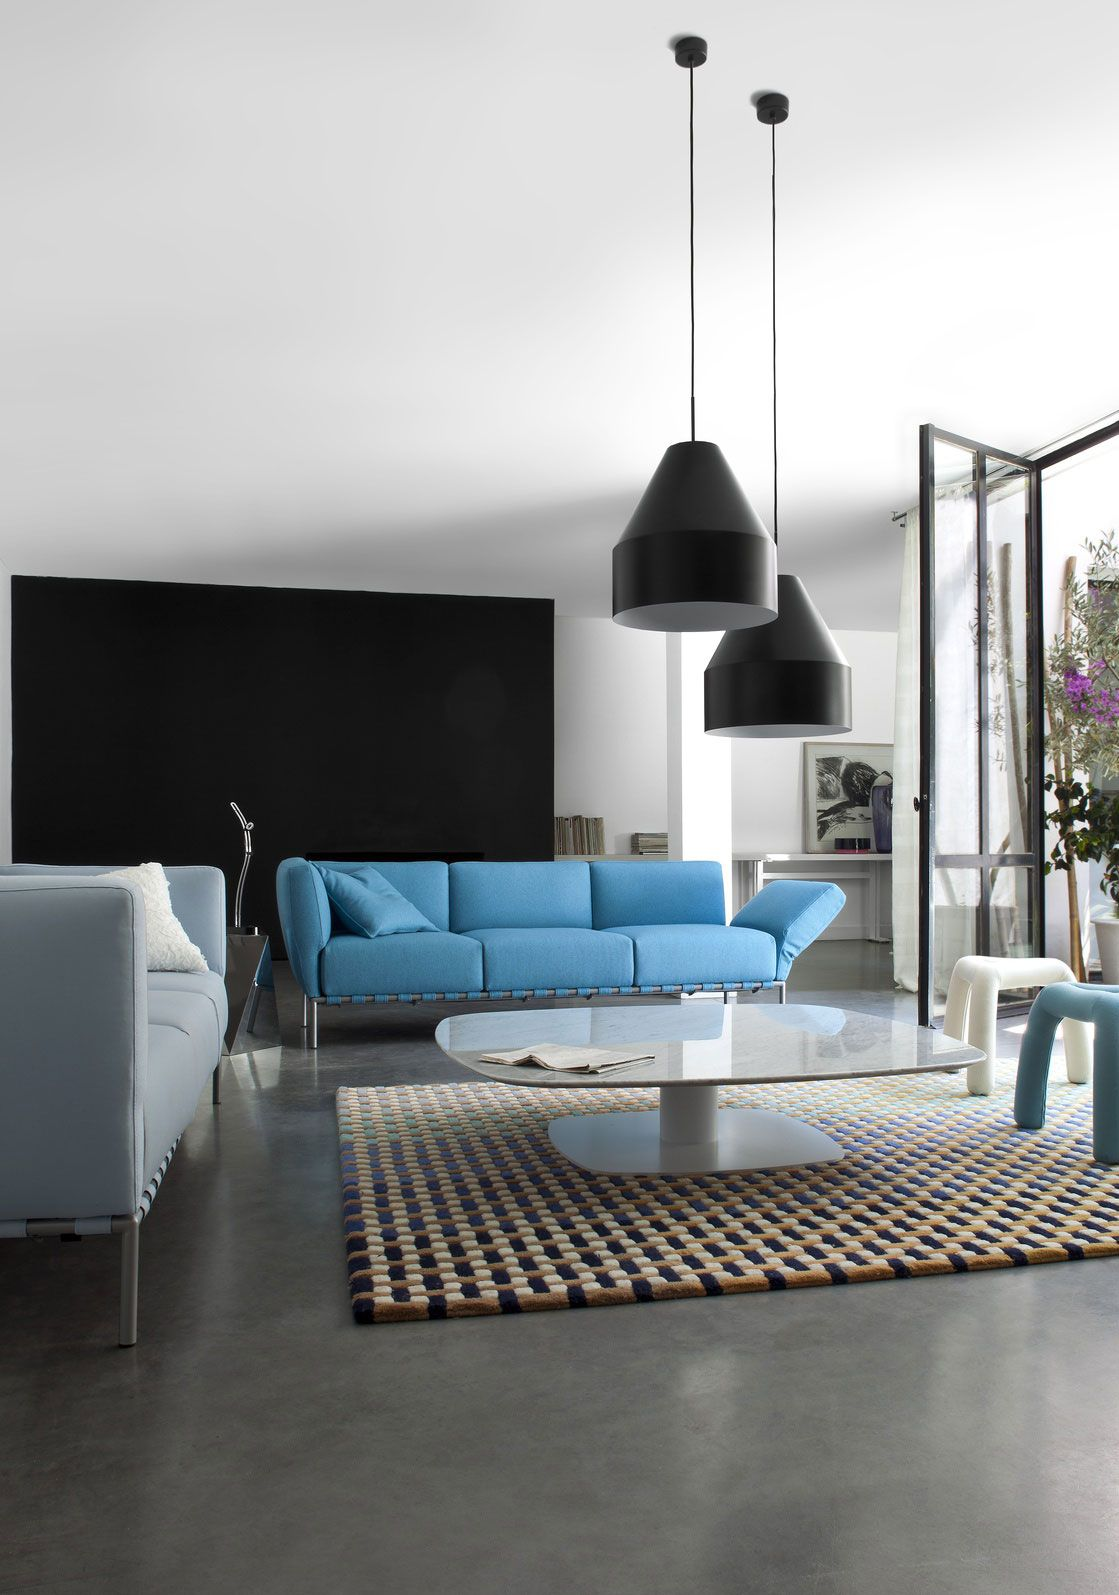 Alster Low Table Designed By Emmanuel Trich For Ligne Roset Available At Linea Inc Modern Furniture Los Angeles Info Modernhome